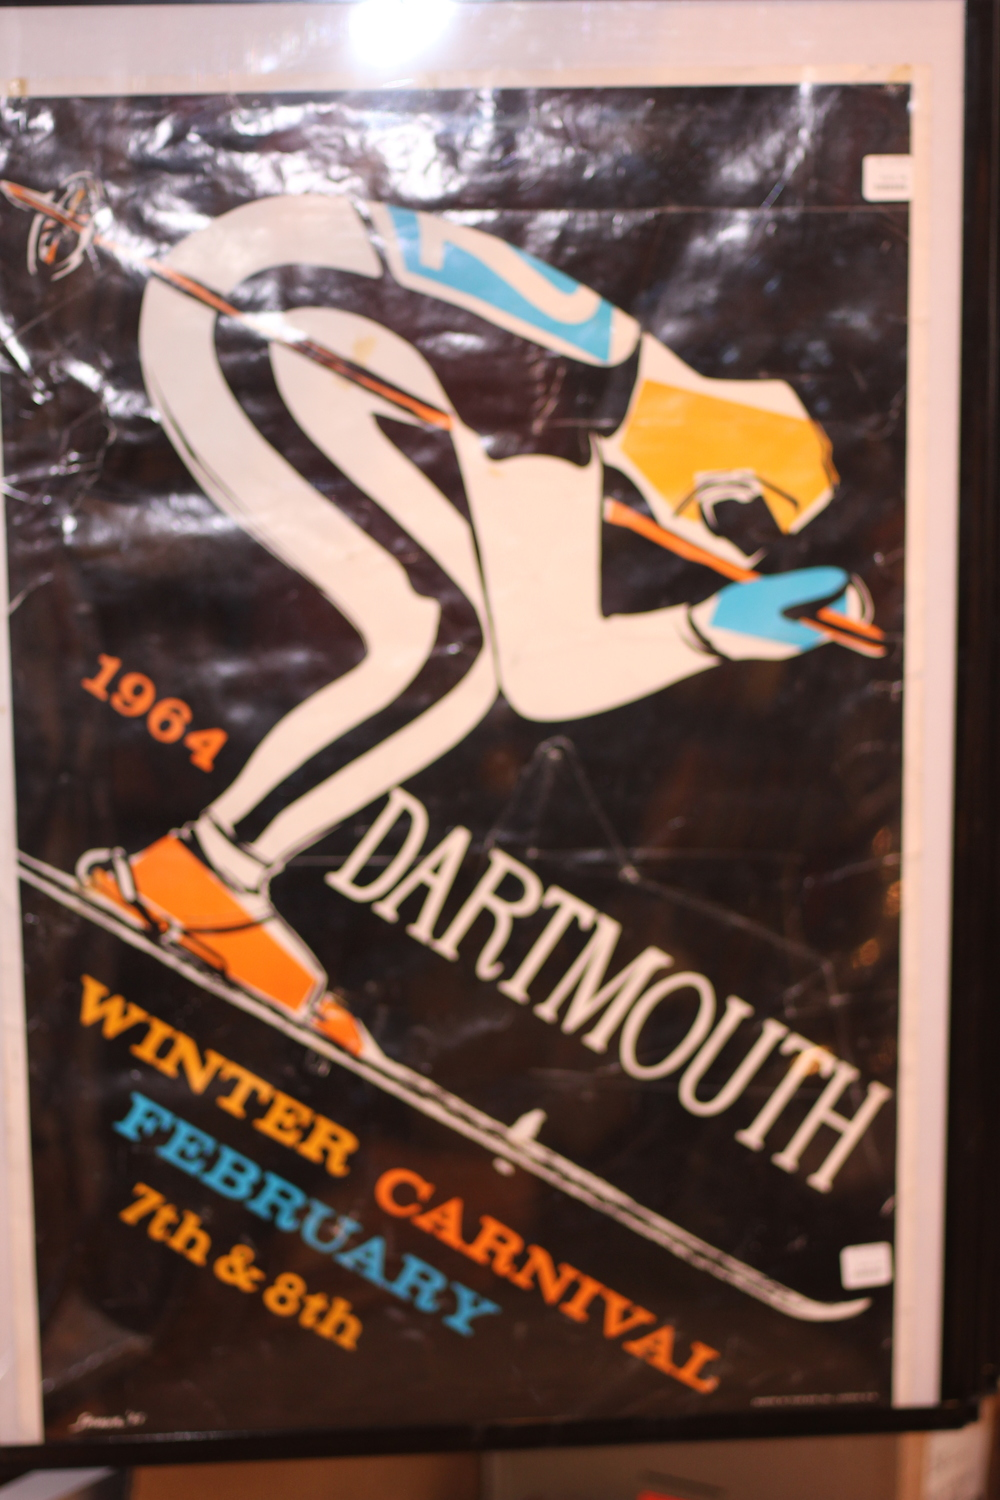 Dartmouth Winter Carnival 1964